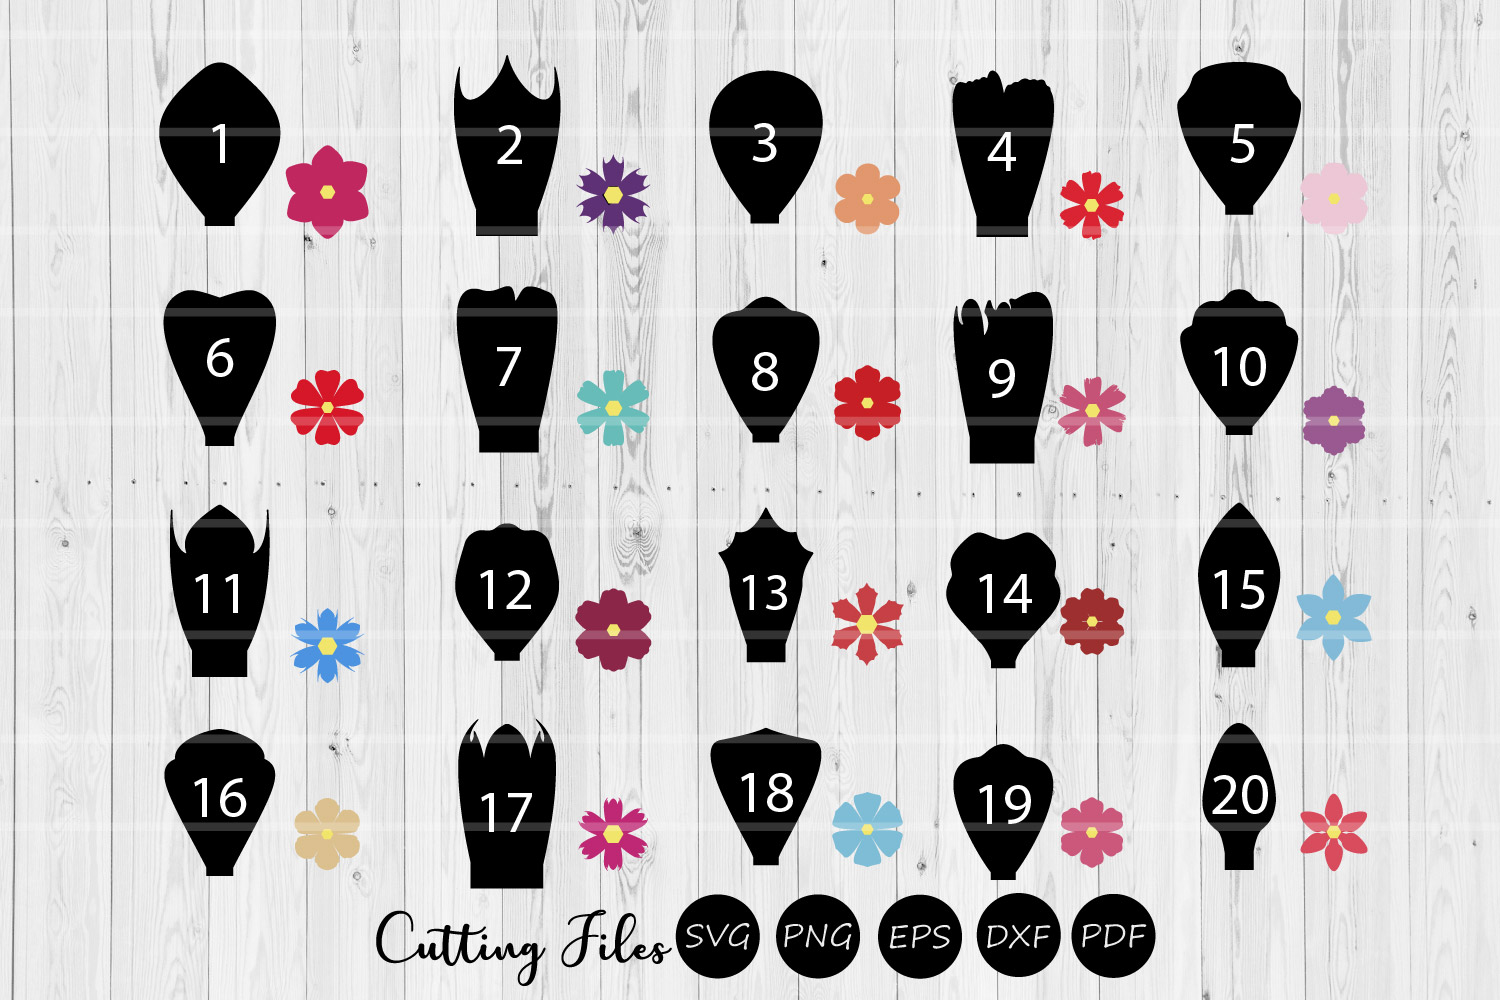 Paper Flowers Templates bundle 1 to 20|A1-40 | DIY projects example image 1